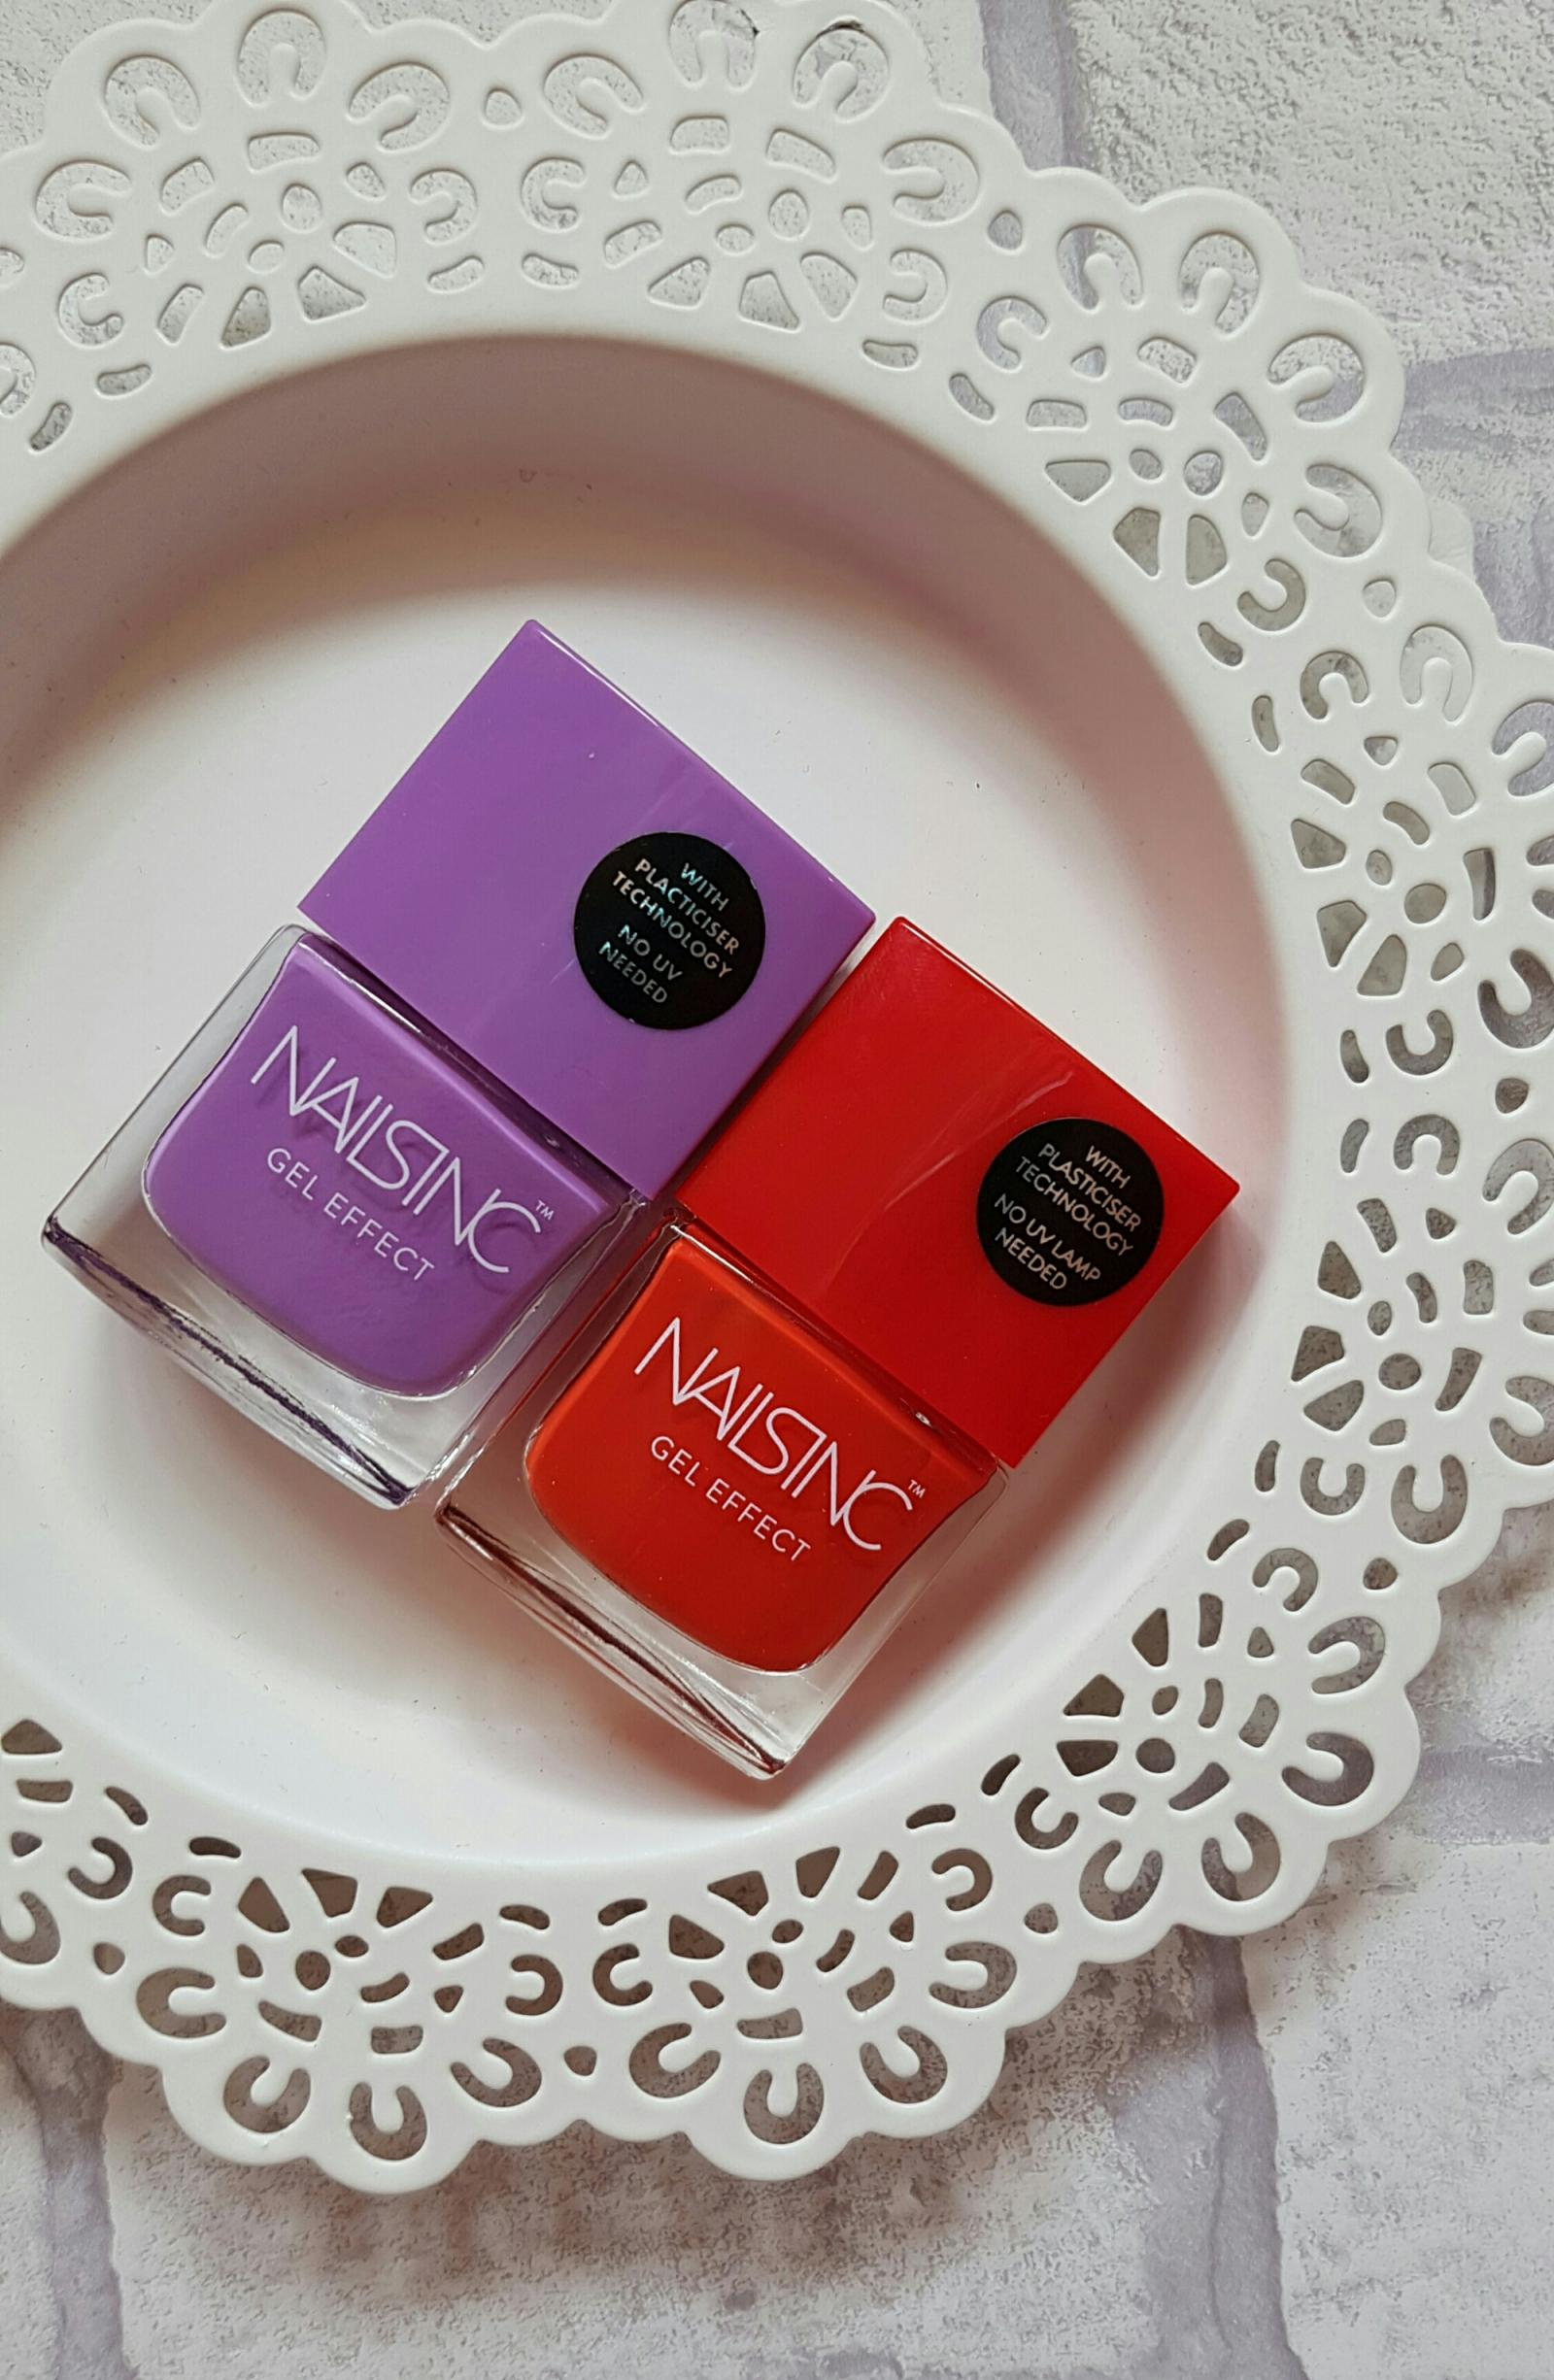 Nails Inc Gel Effect Polishes Review and Swatches